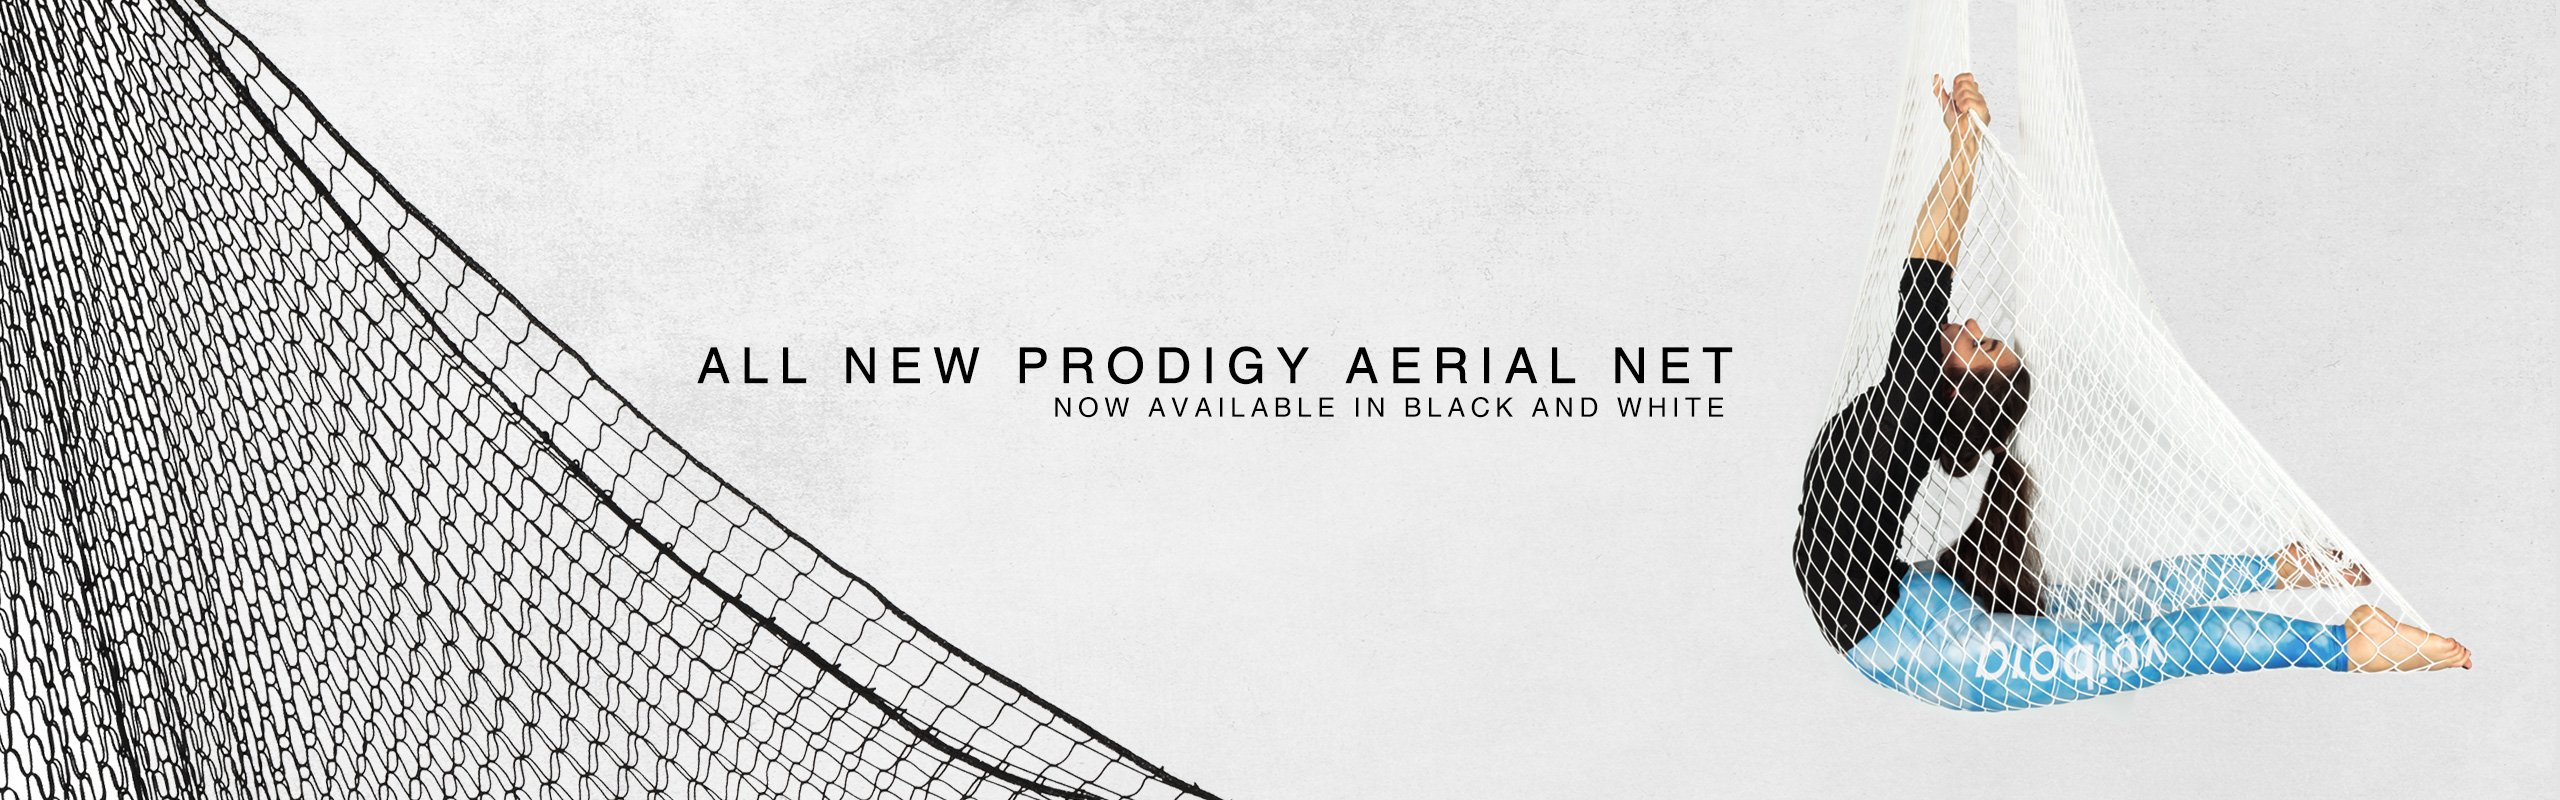 New Prodigy Aerial Nets